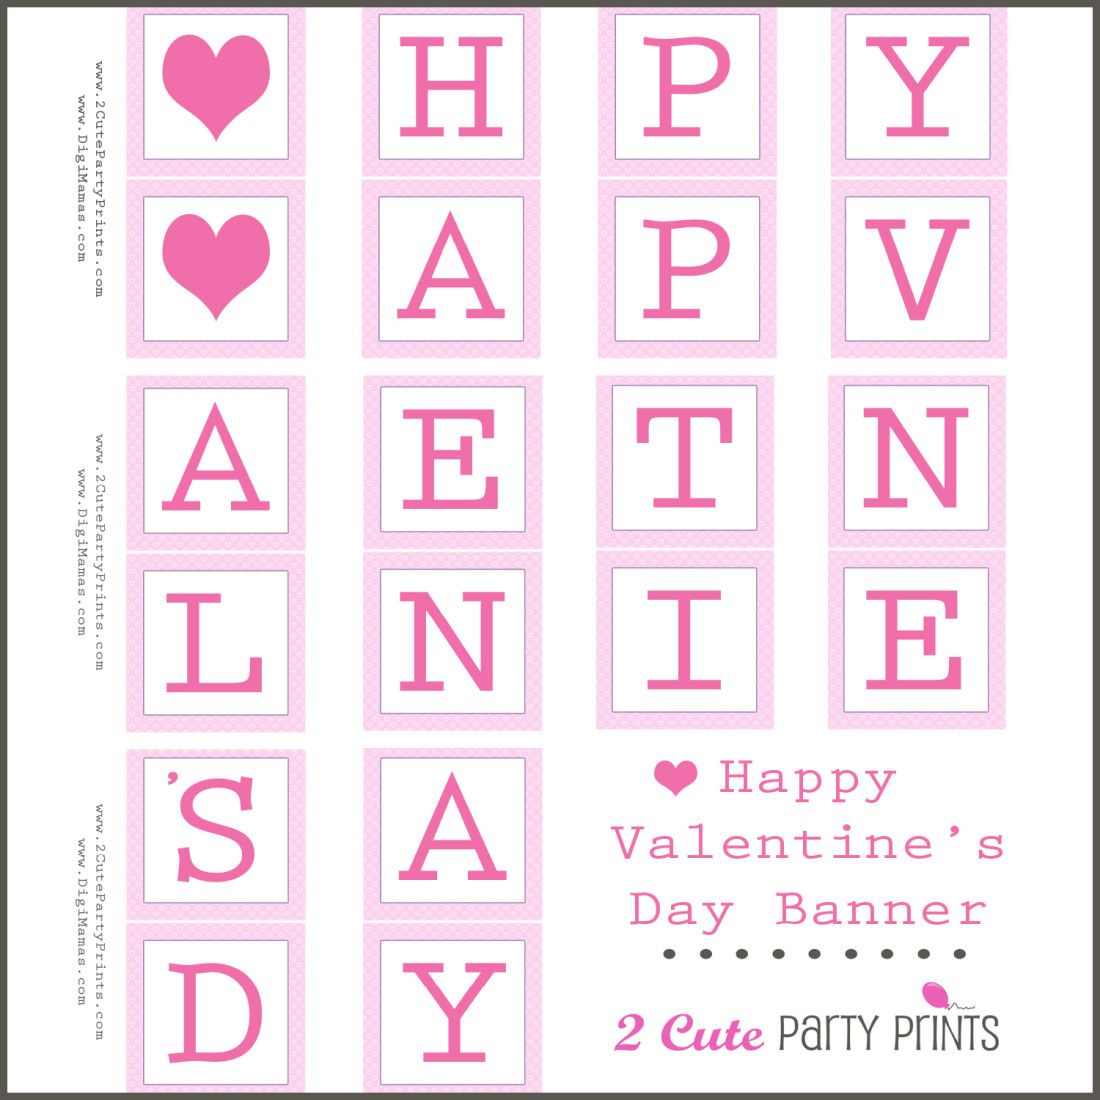 image regarding Happy Valentines Day Banner Printable identified as Joyful Valentines Working day Banner Printable - Digi-Mamas - Absolutely free